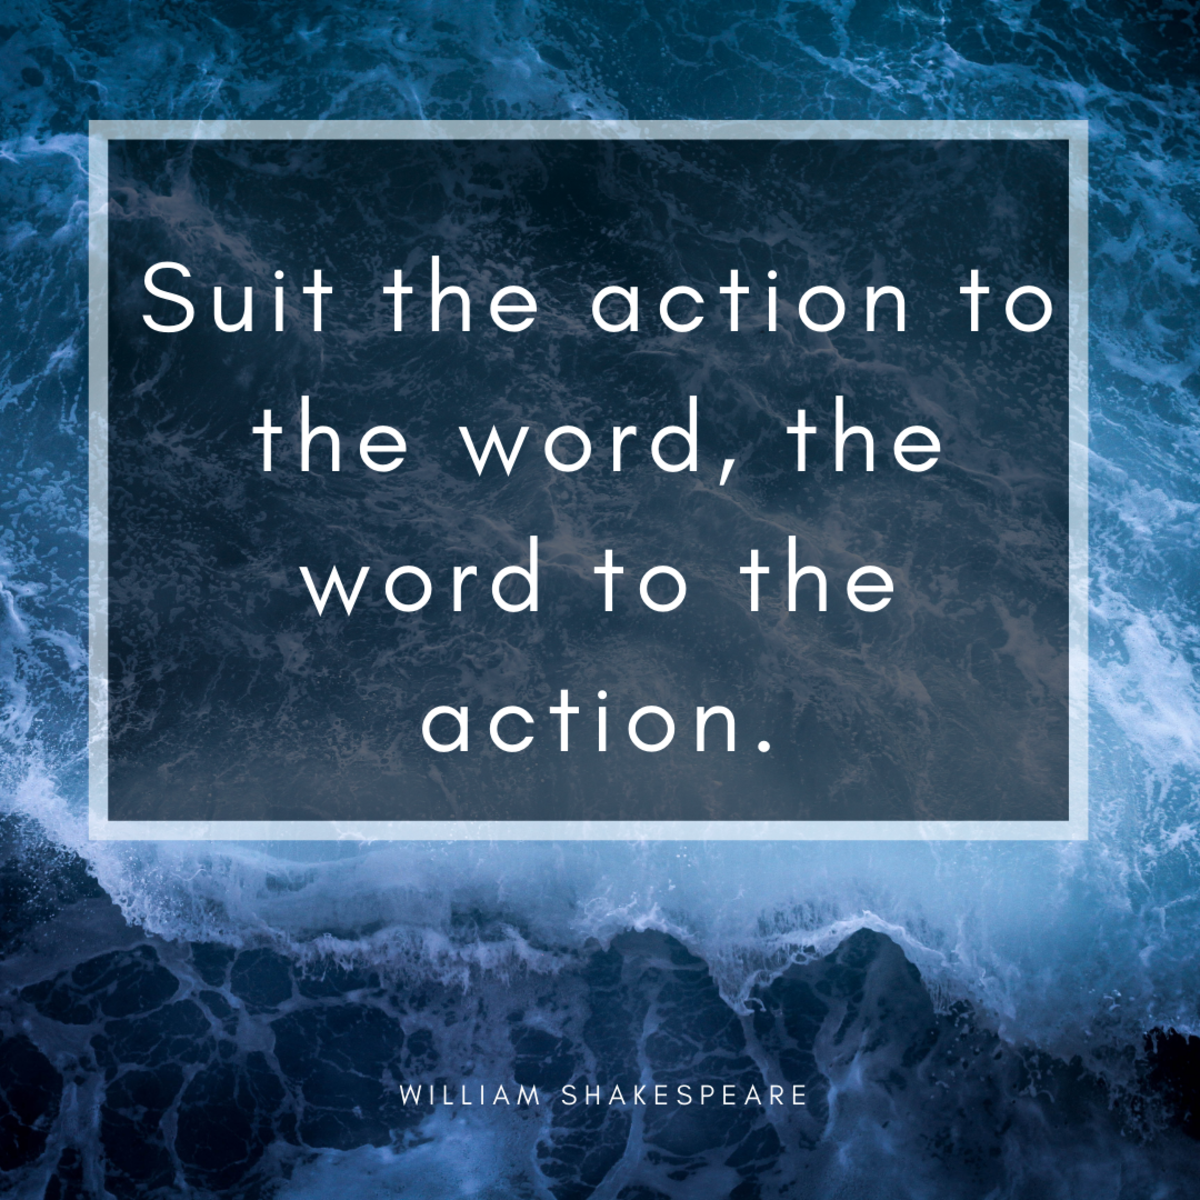 Matching action to words can be a lifelong endeavor.